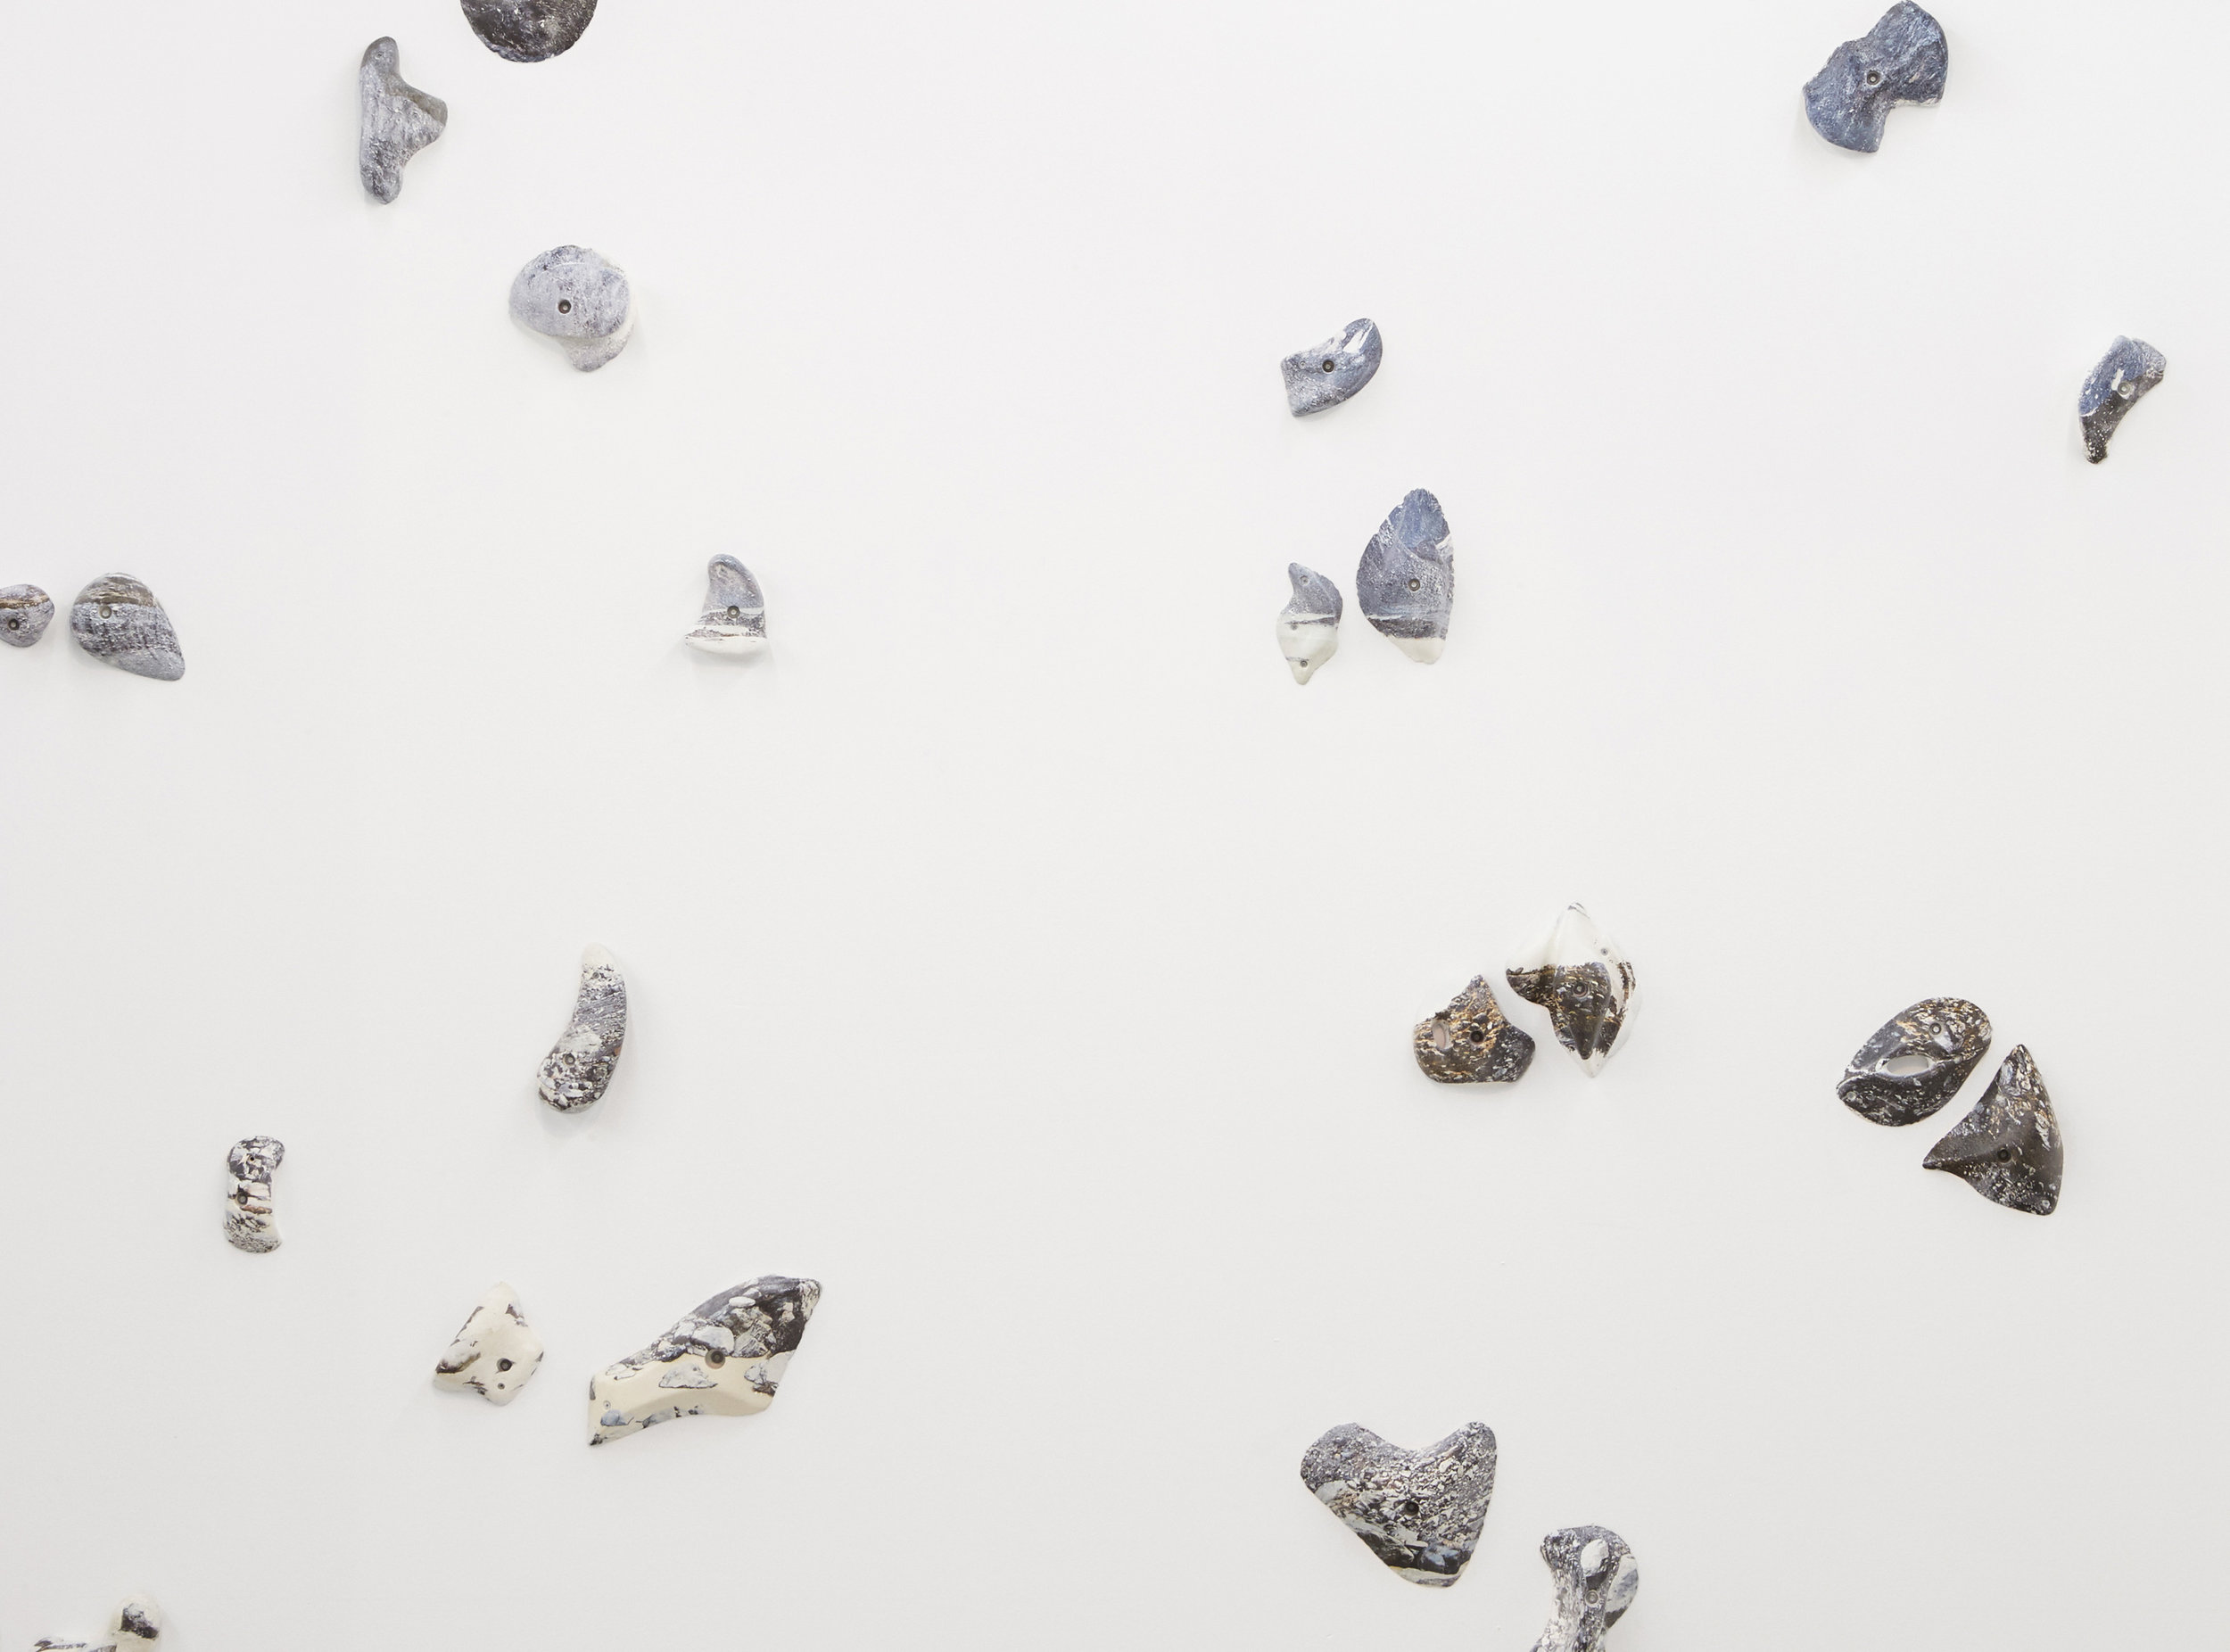 Kai Wasikowski, 'Climb, grip, hold' (detail), 2018, hydrographic print on rock climbing holds, dimensions variable. Installation view  2018 NSW Visual Arts Emerging Fellowship , Artspace, Sydney. Image credit: Zan Wimberley.